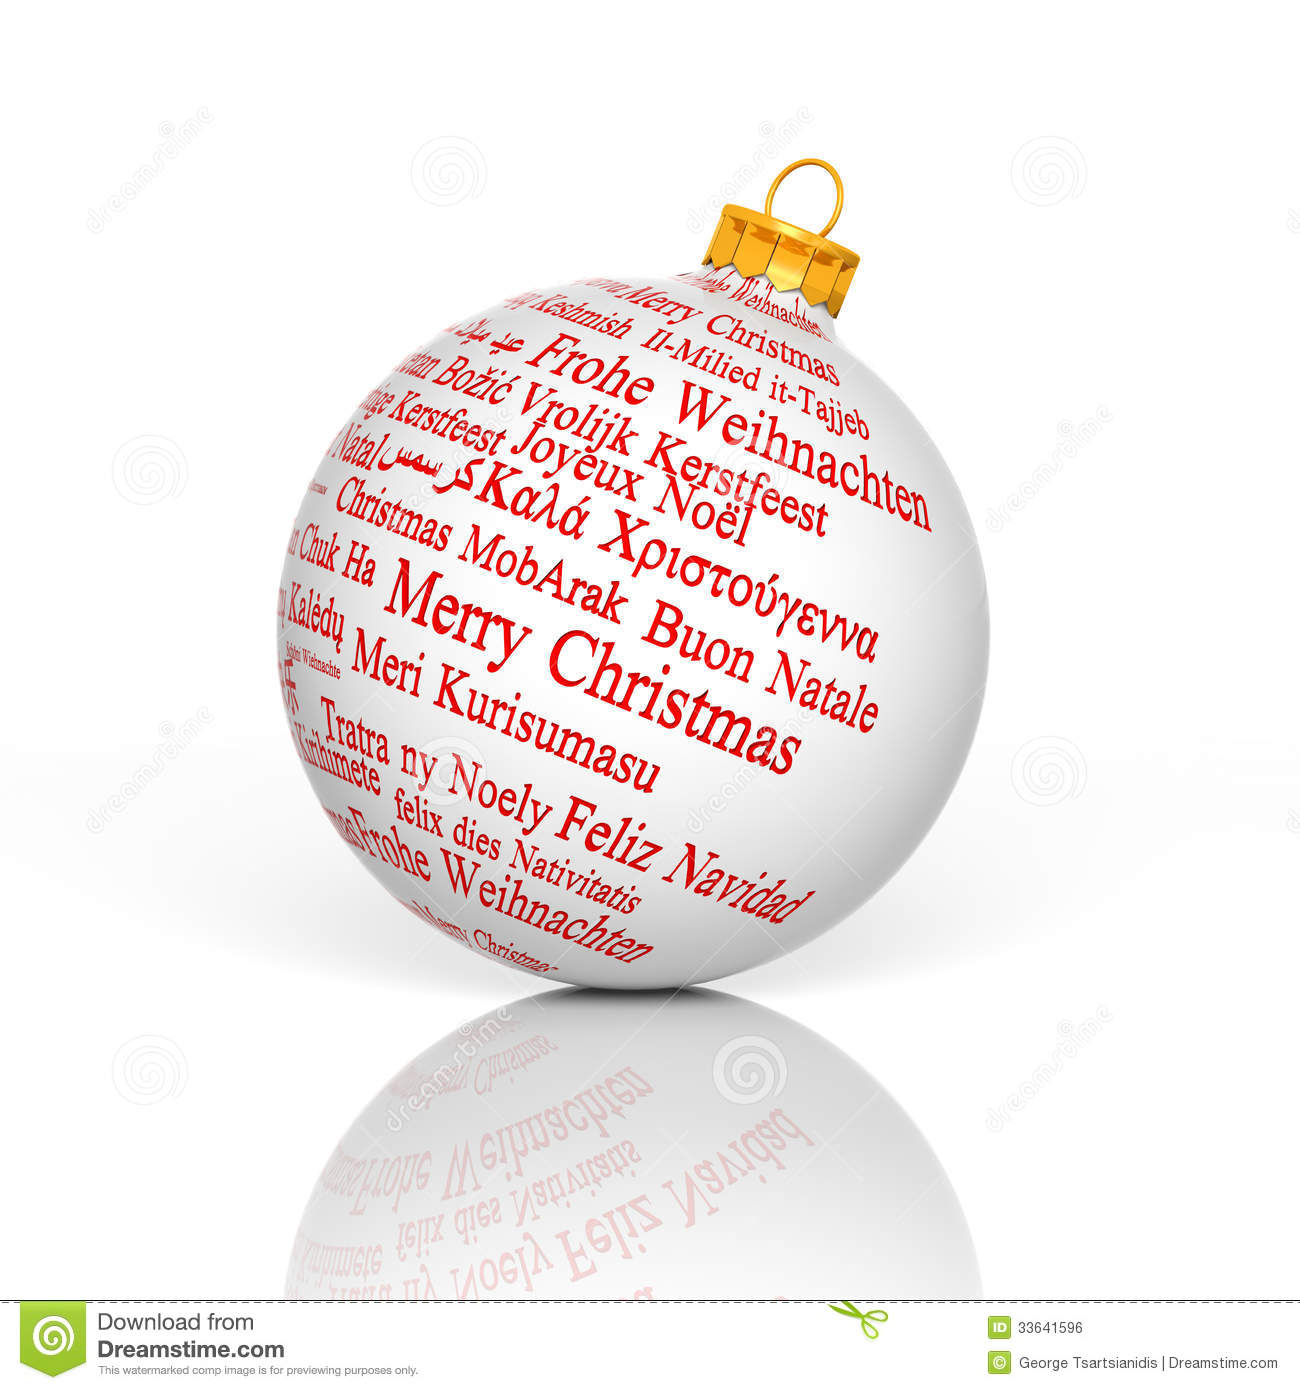 Merry Christmas In Different Languages.Merry Christmas In Different Languages Stock Illustration